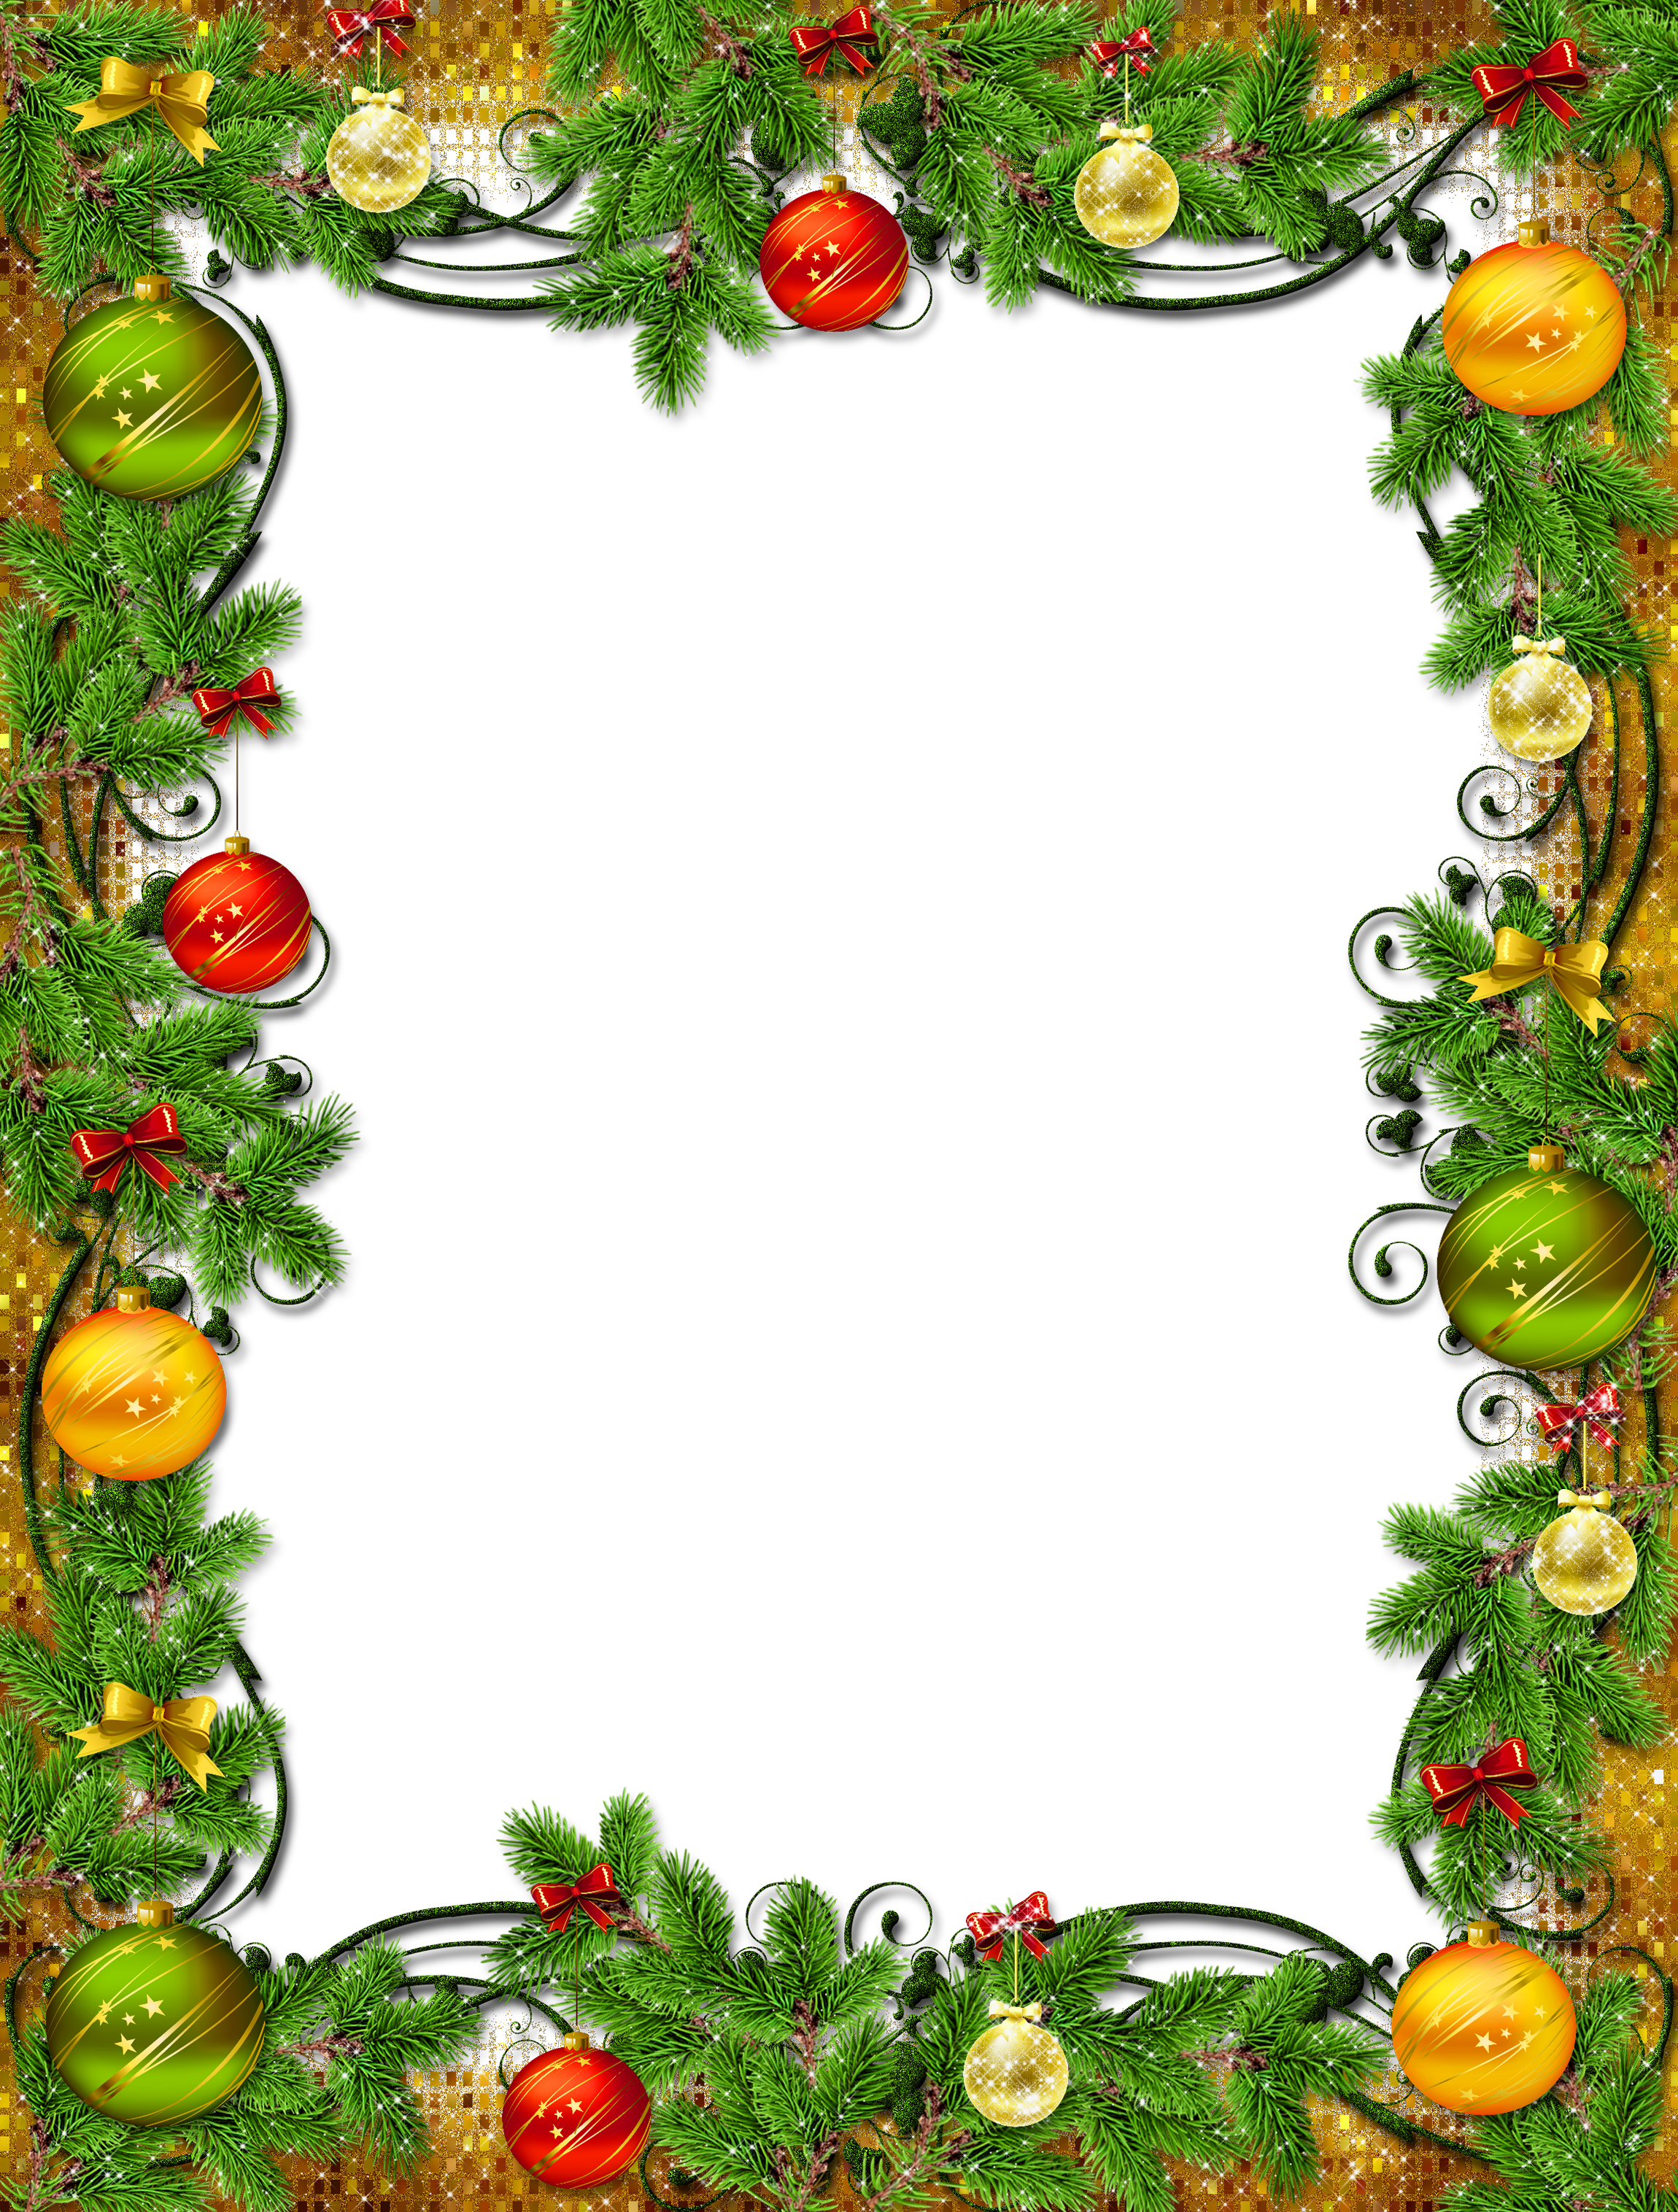 Christmas border .png. Beautiful png photo frame